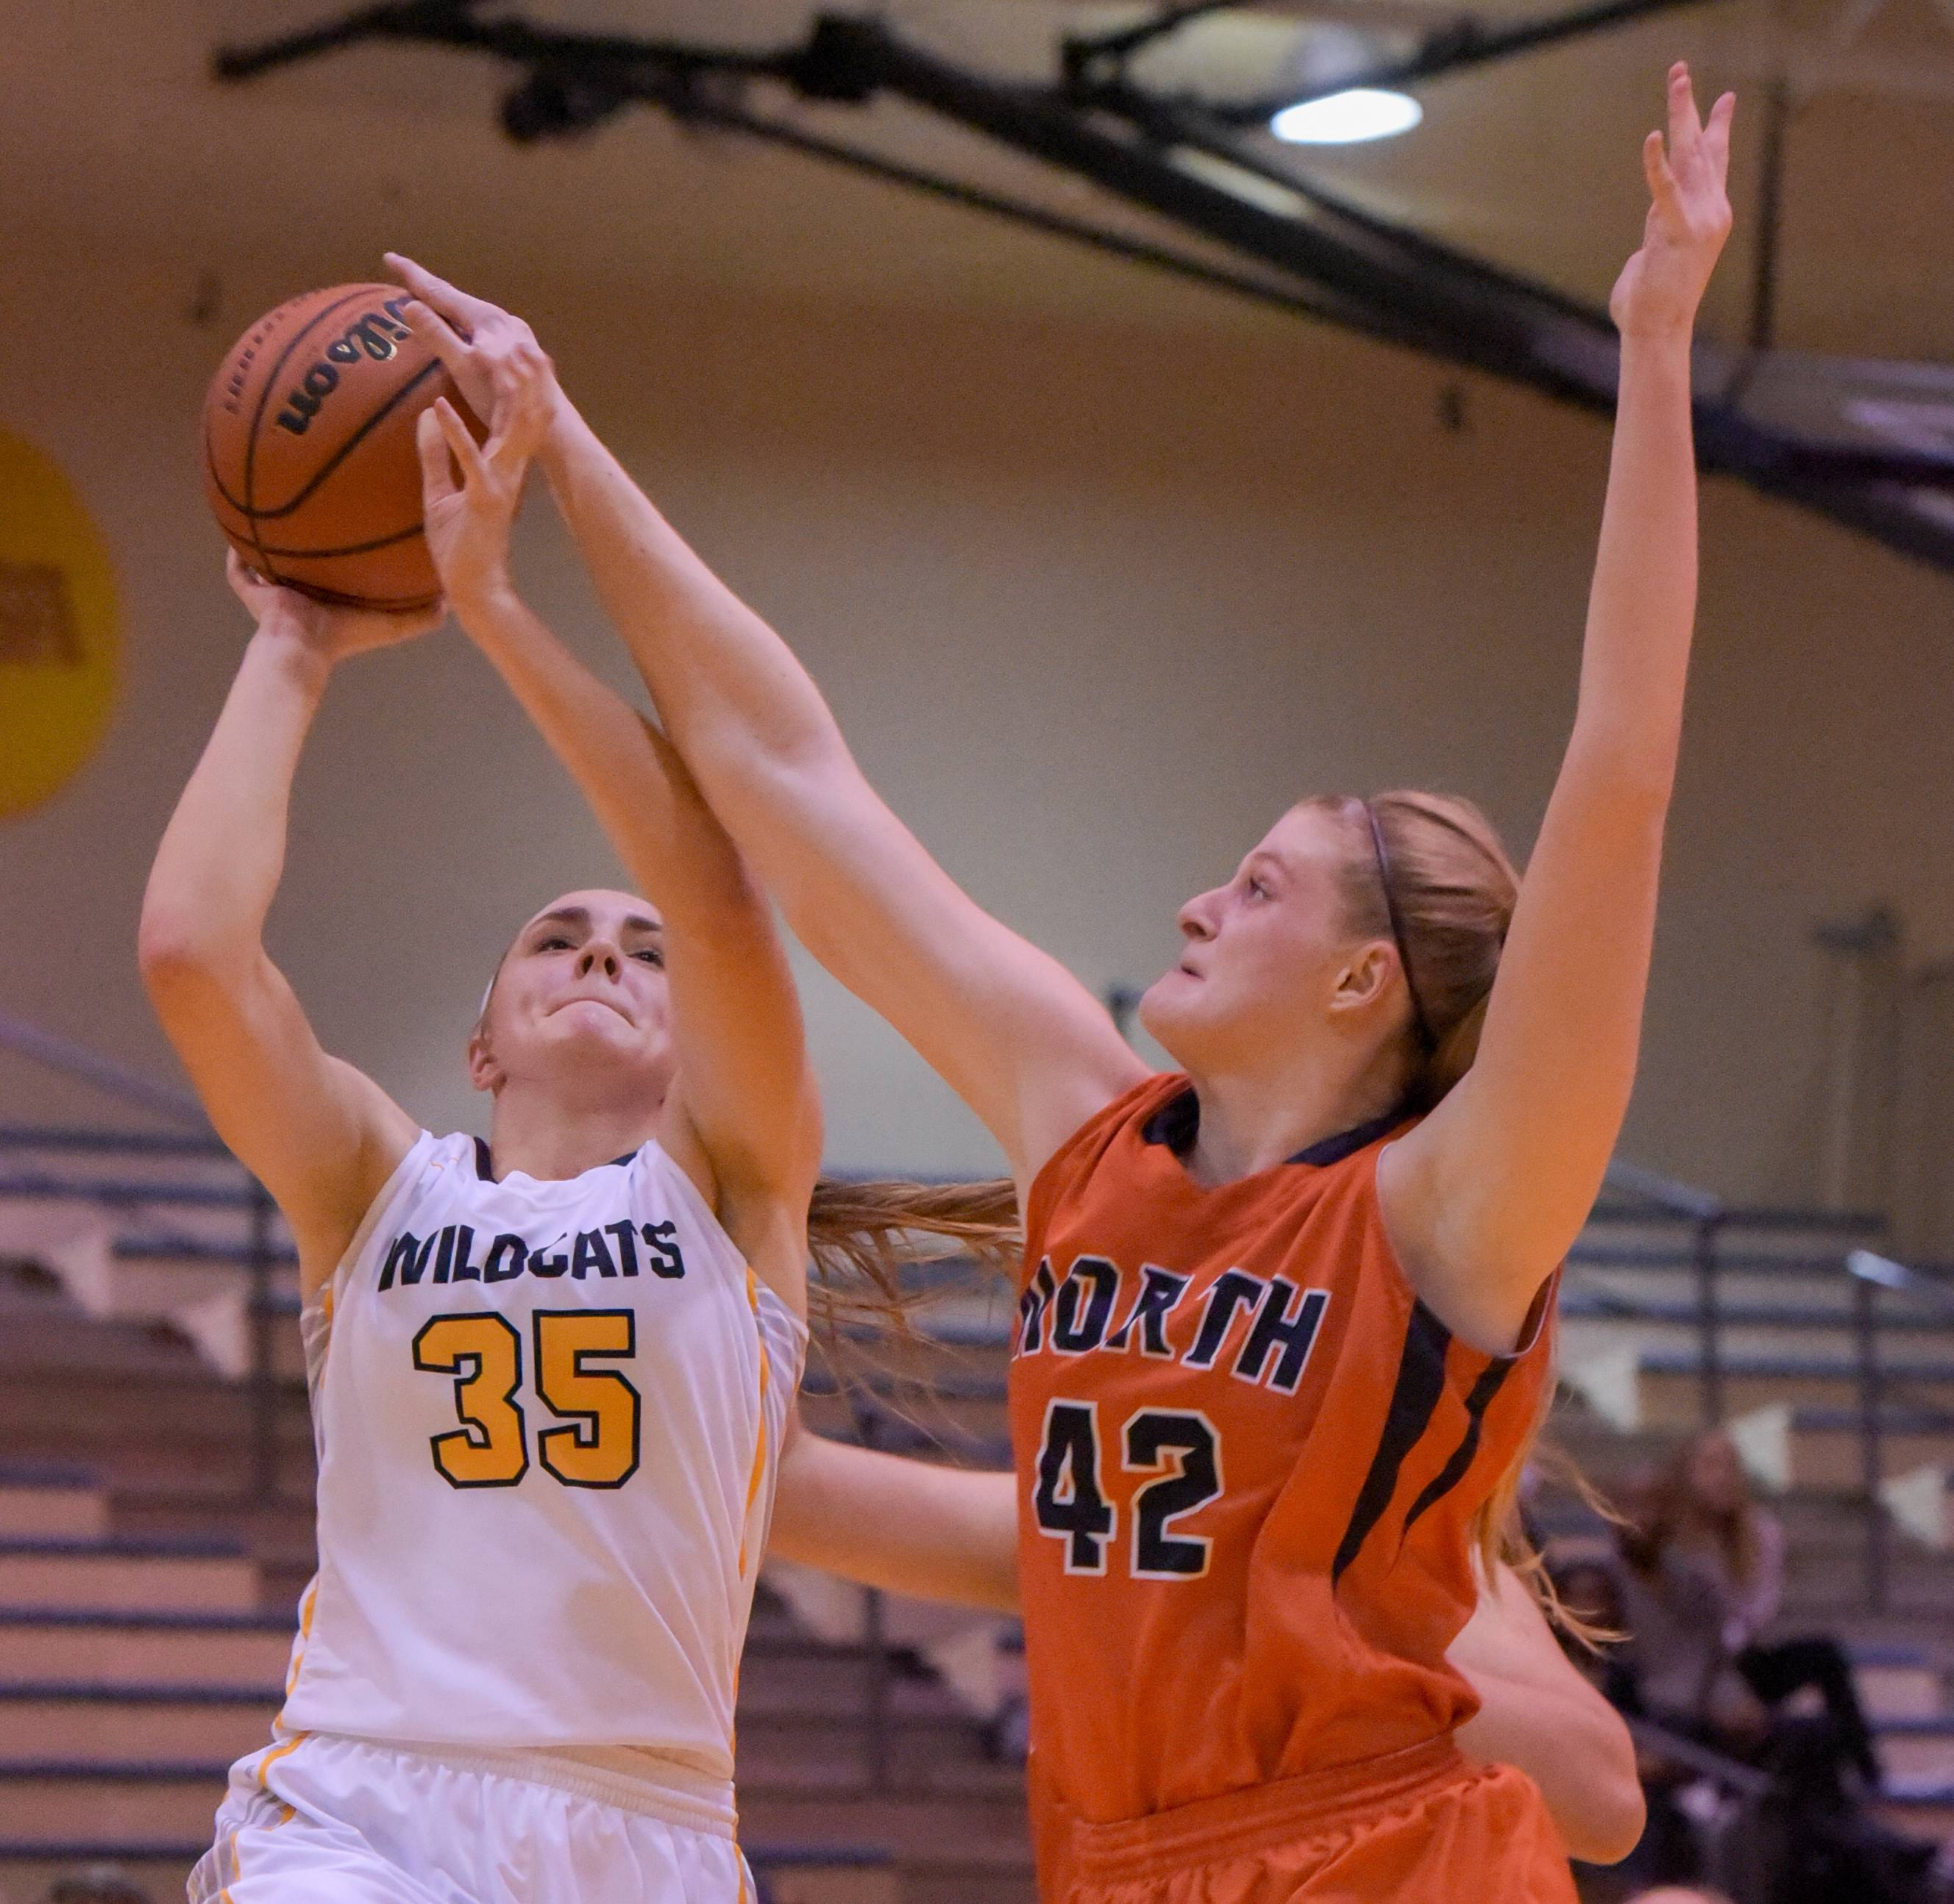 Neuqua Valley's Erin McCarthy has her shot blocked by Naperville North's Sadie Jurkovic during girls basketball at on Wednesday, Jan. 10, 2018.